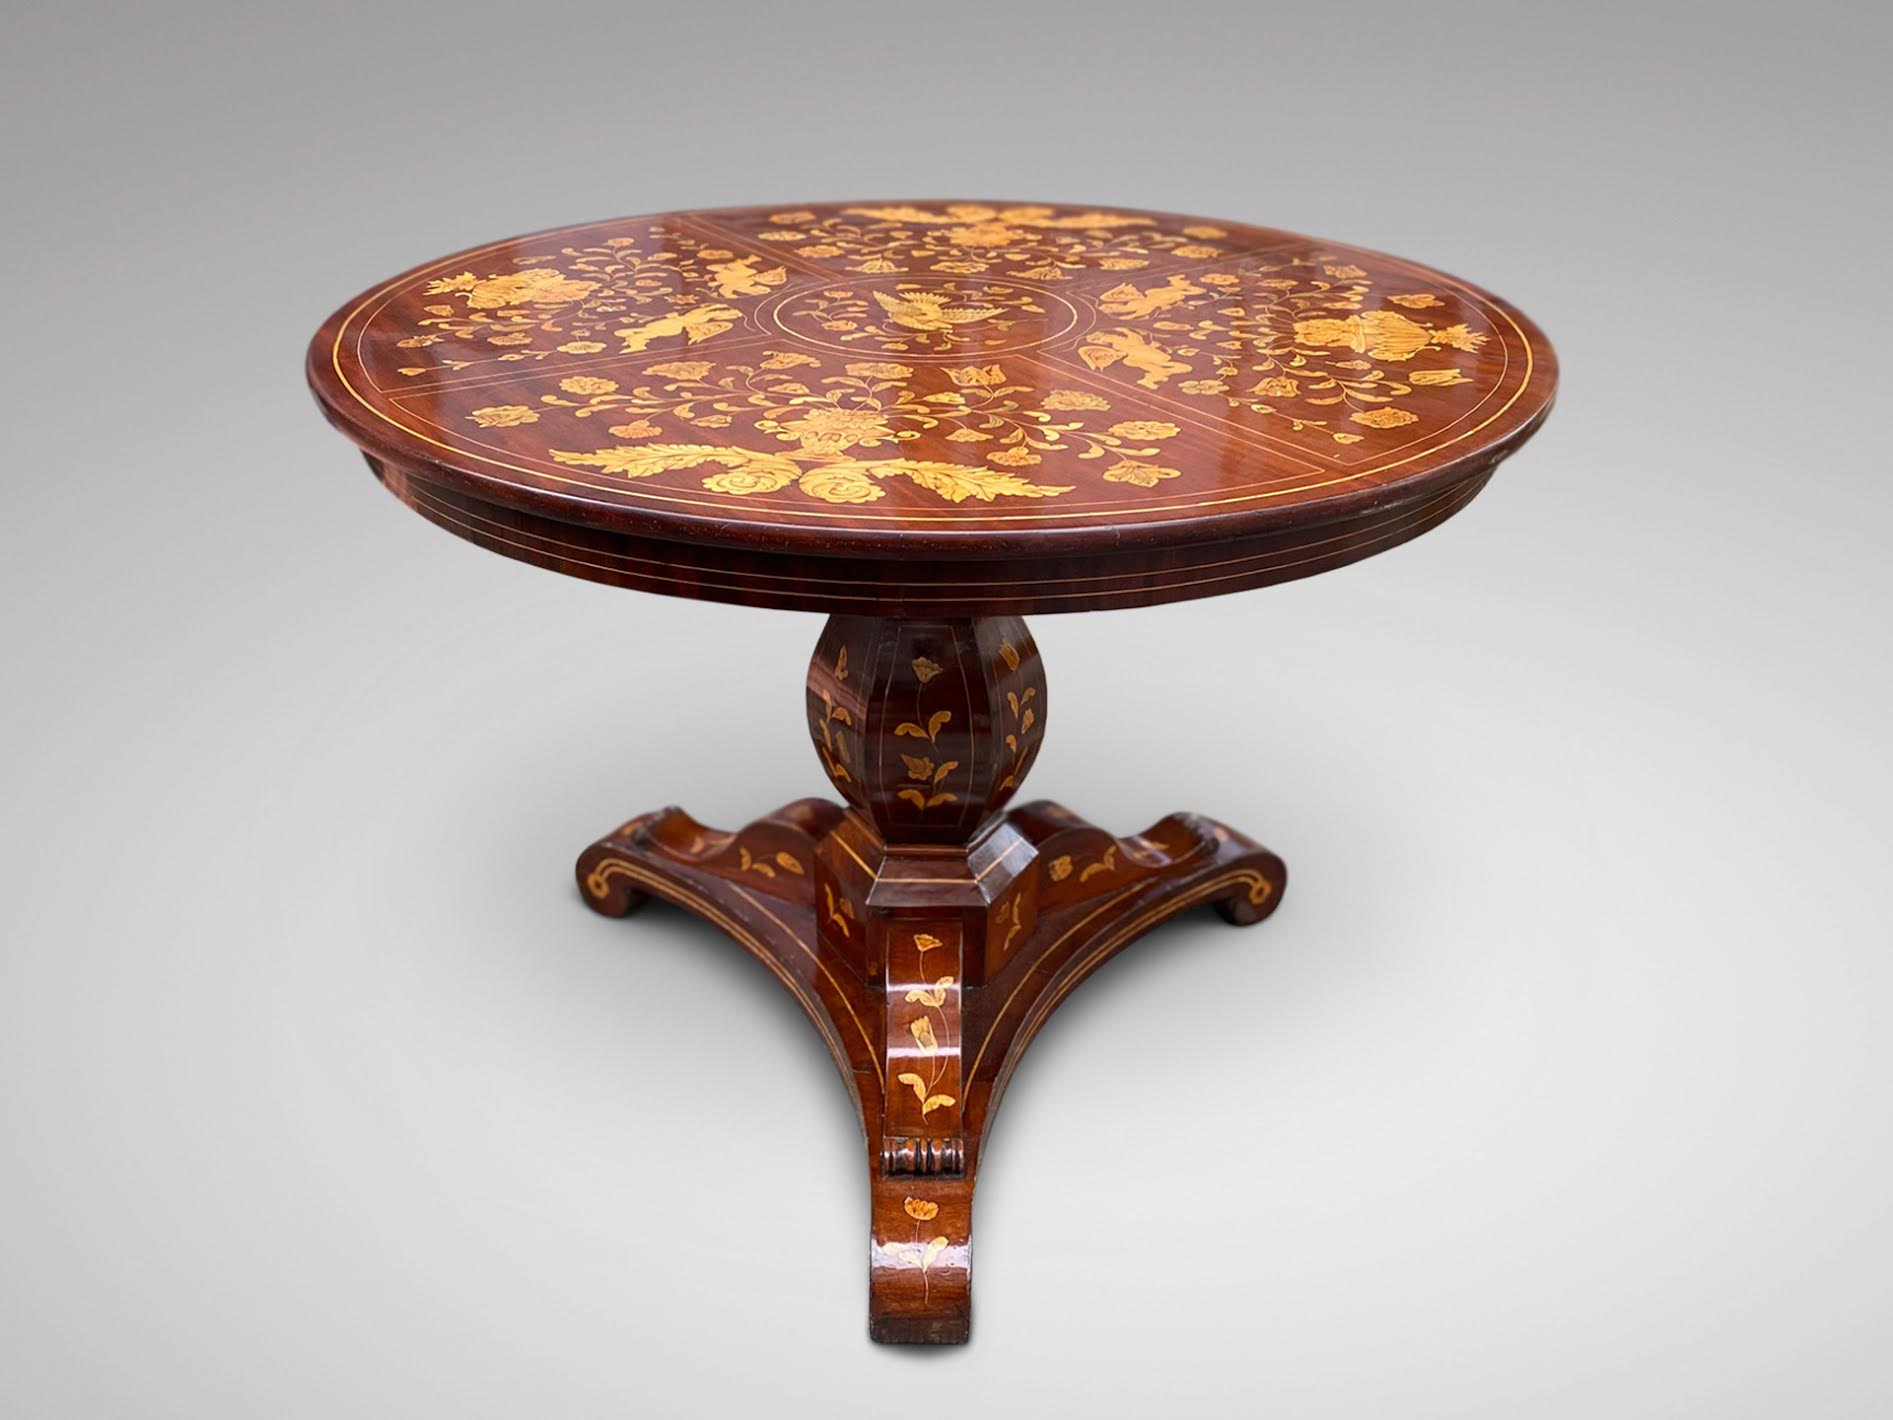 19C DUTCH MAHOGANY MARQUETRY CENTRE TABLE